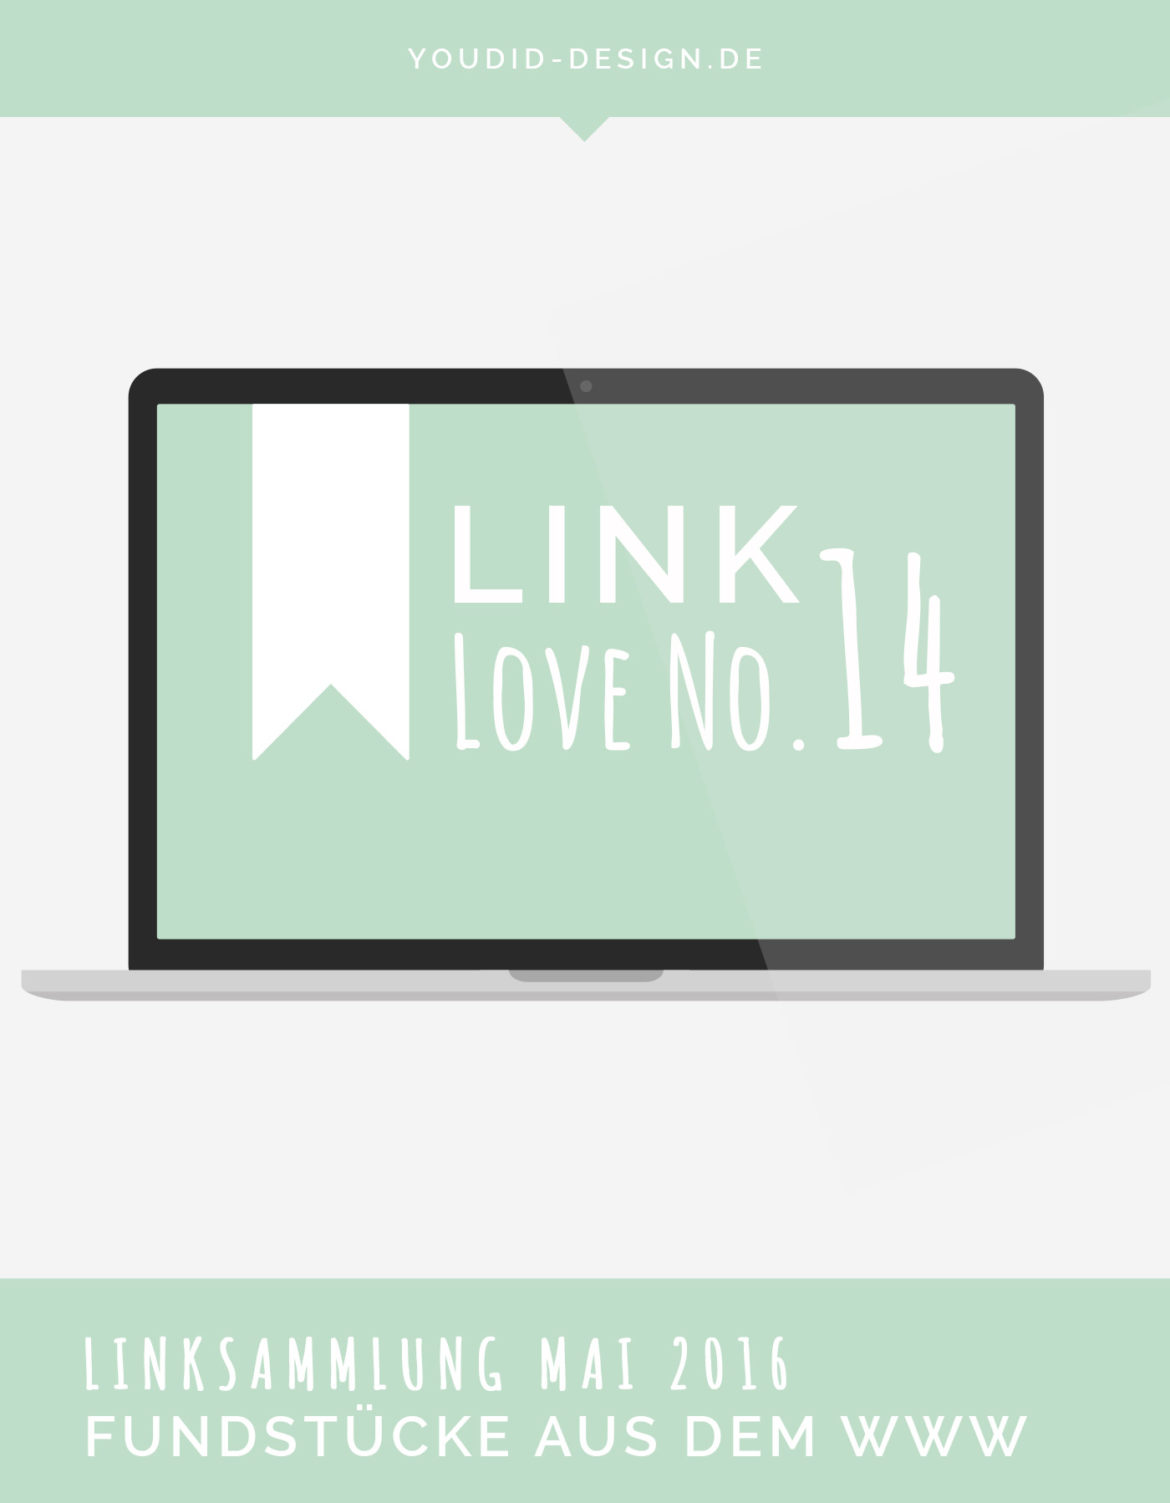 Linksammlung Linklove No 14 Mai 2016 | www.youdid-design.de